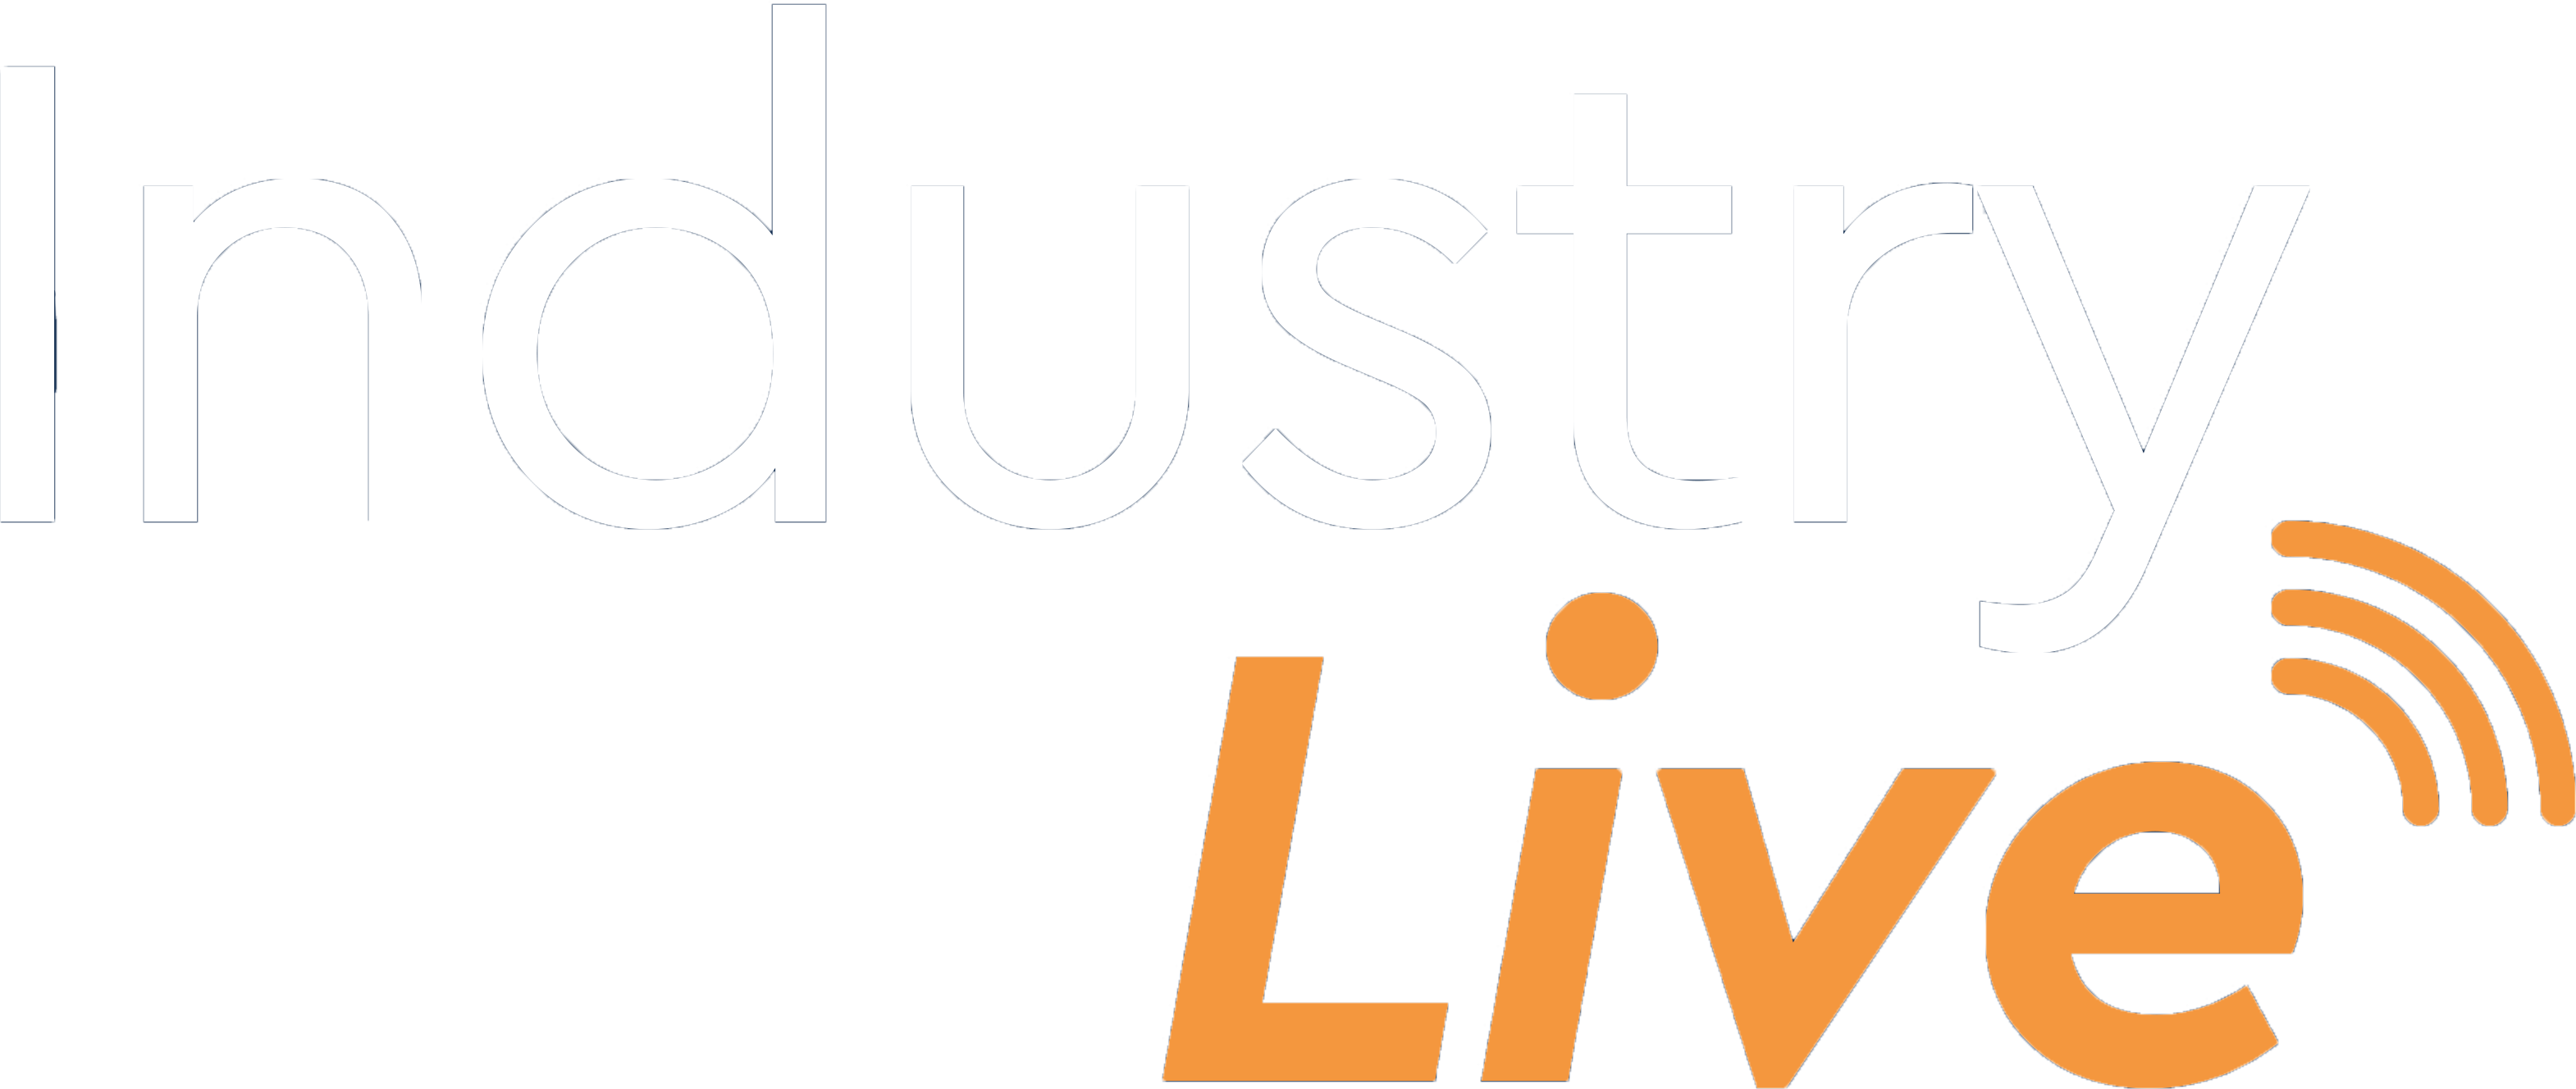 industrylive.in